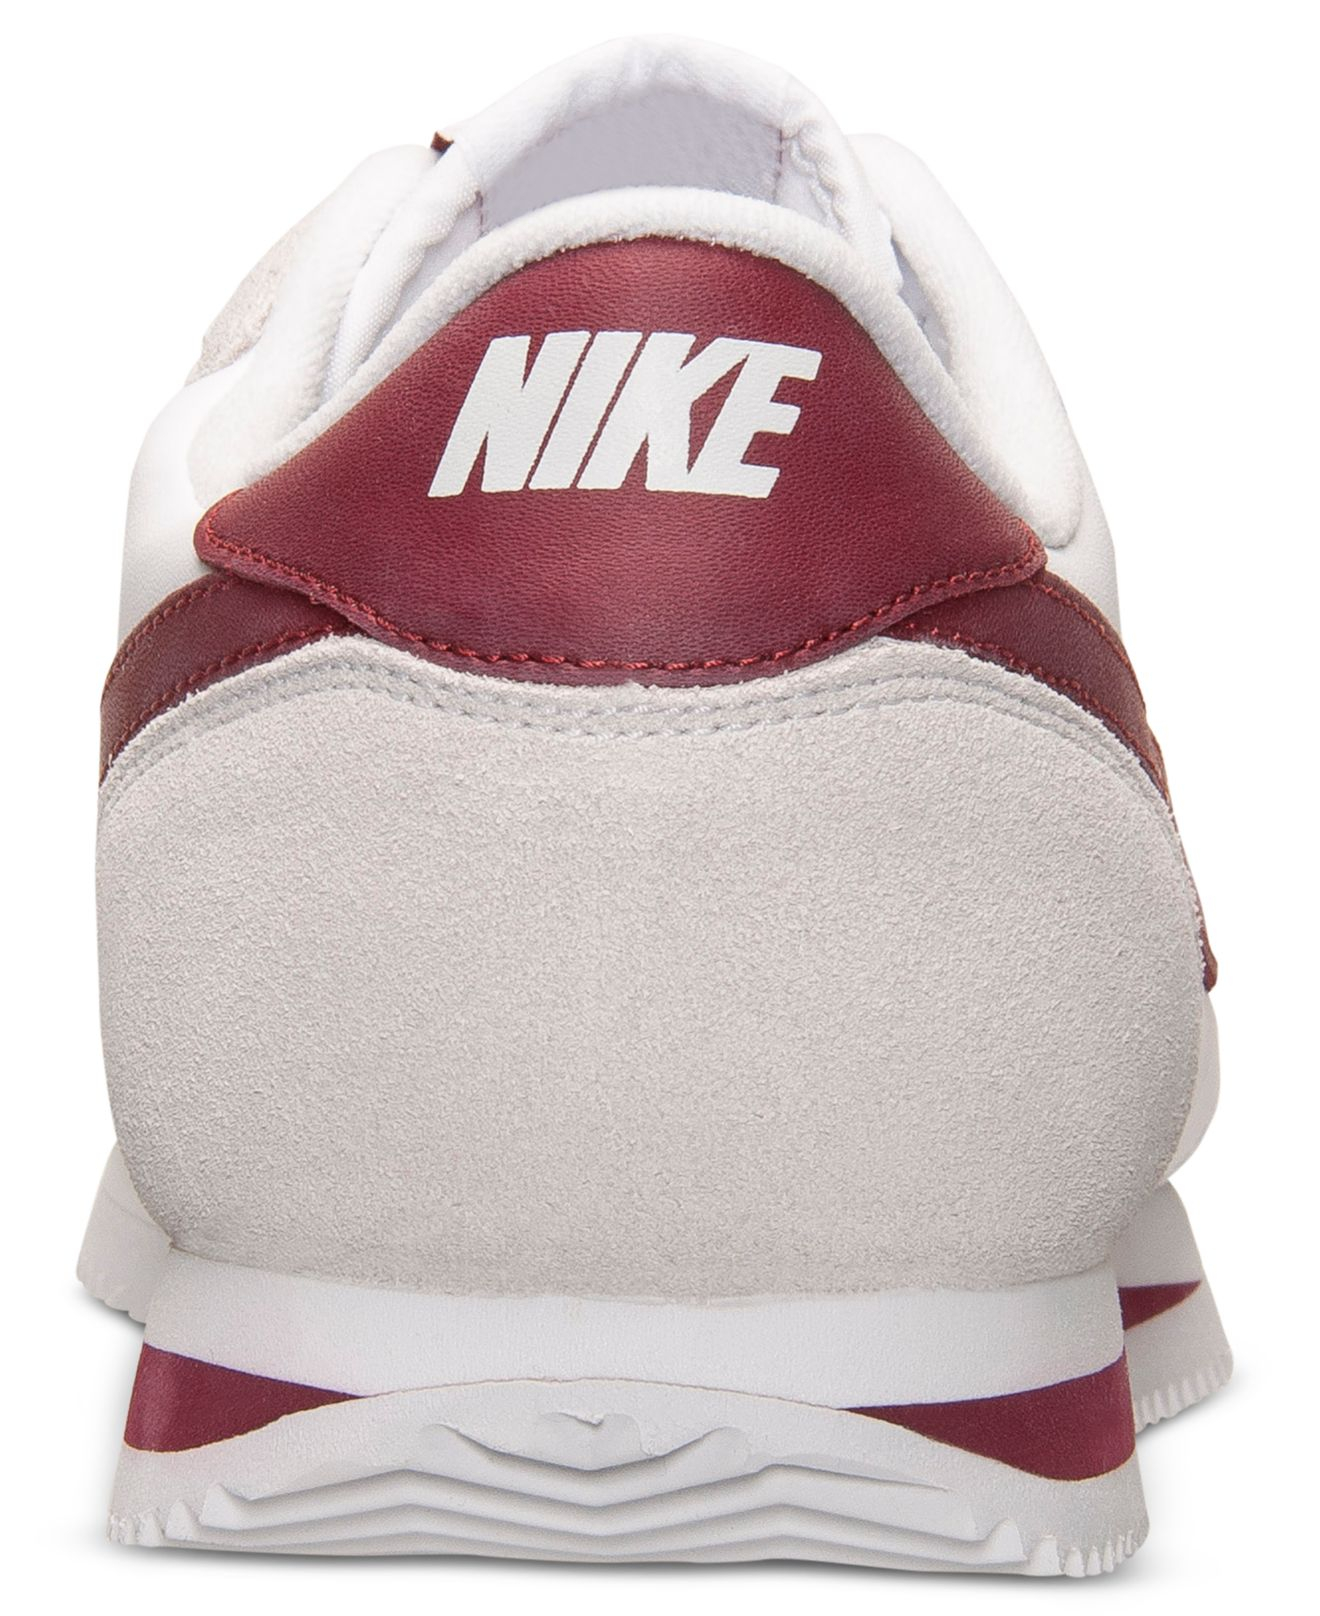 uk availability 76d0a 62e56 Nike Classic Cortez Finish Line gatwick-airport-parking ...